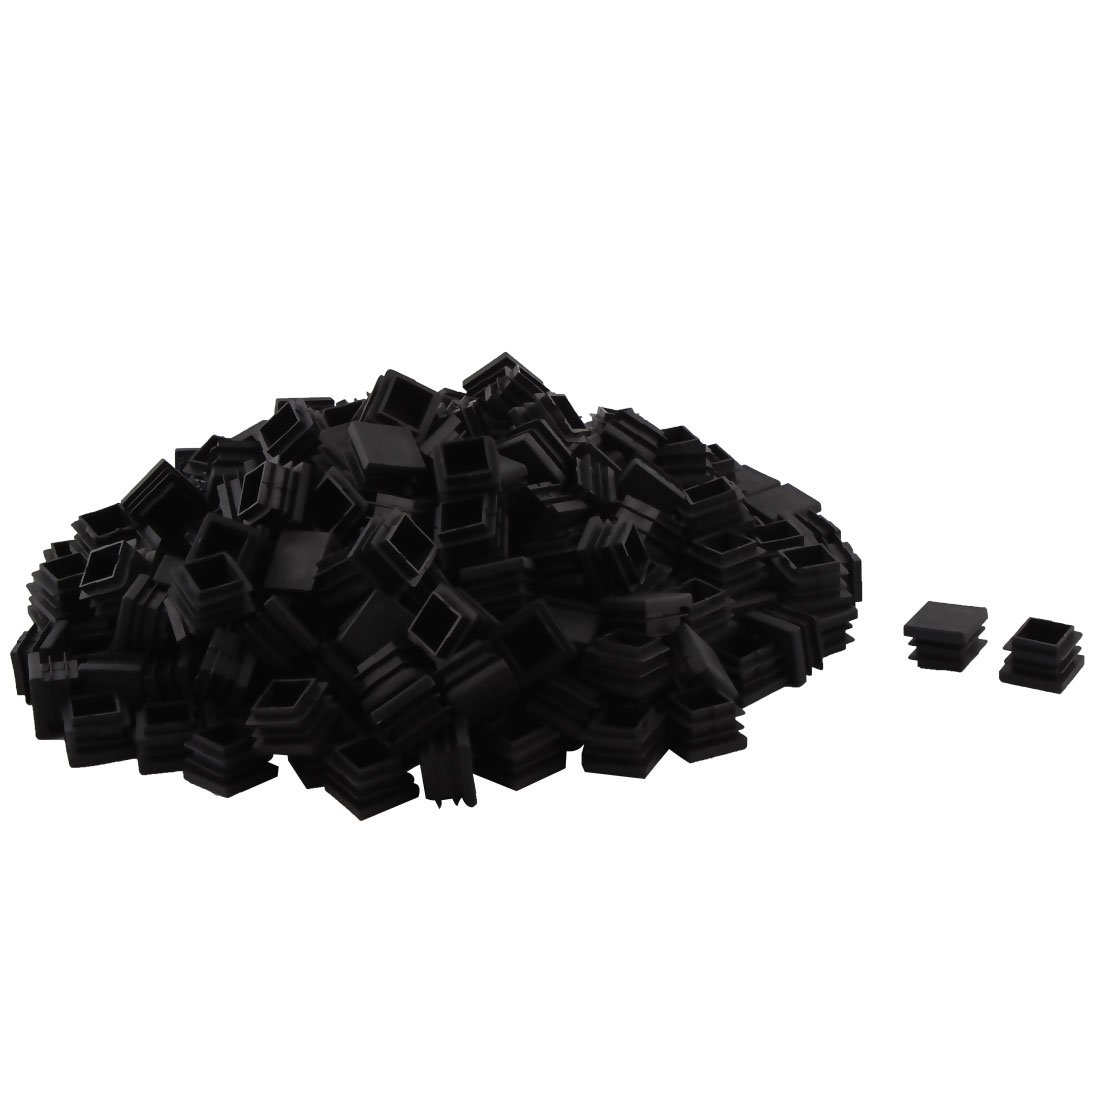 OKSLO Plastic sruare table chair feet tube insert caps covers black 22 x 22mm 250pcs